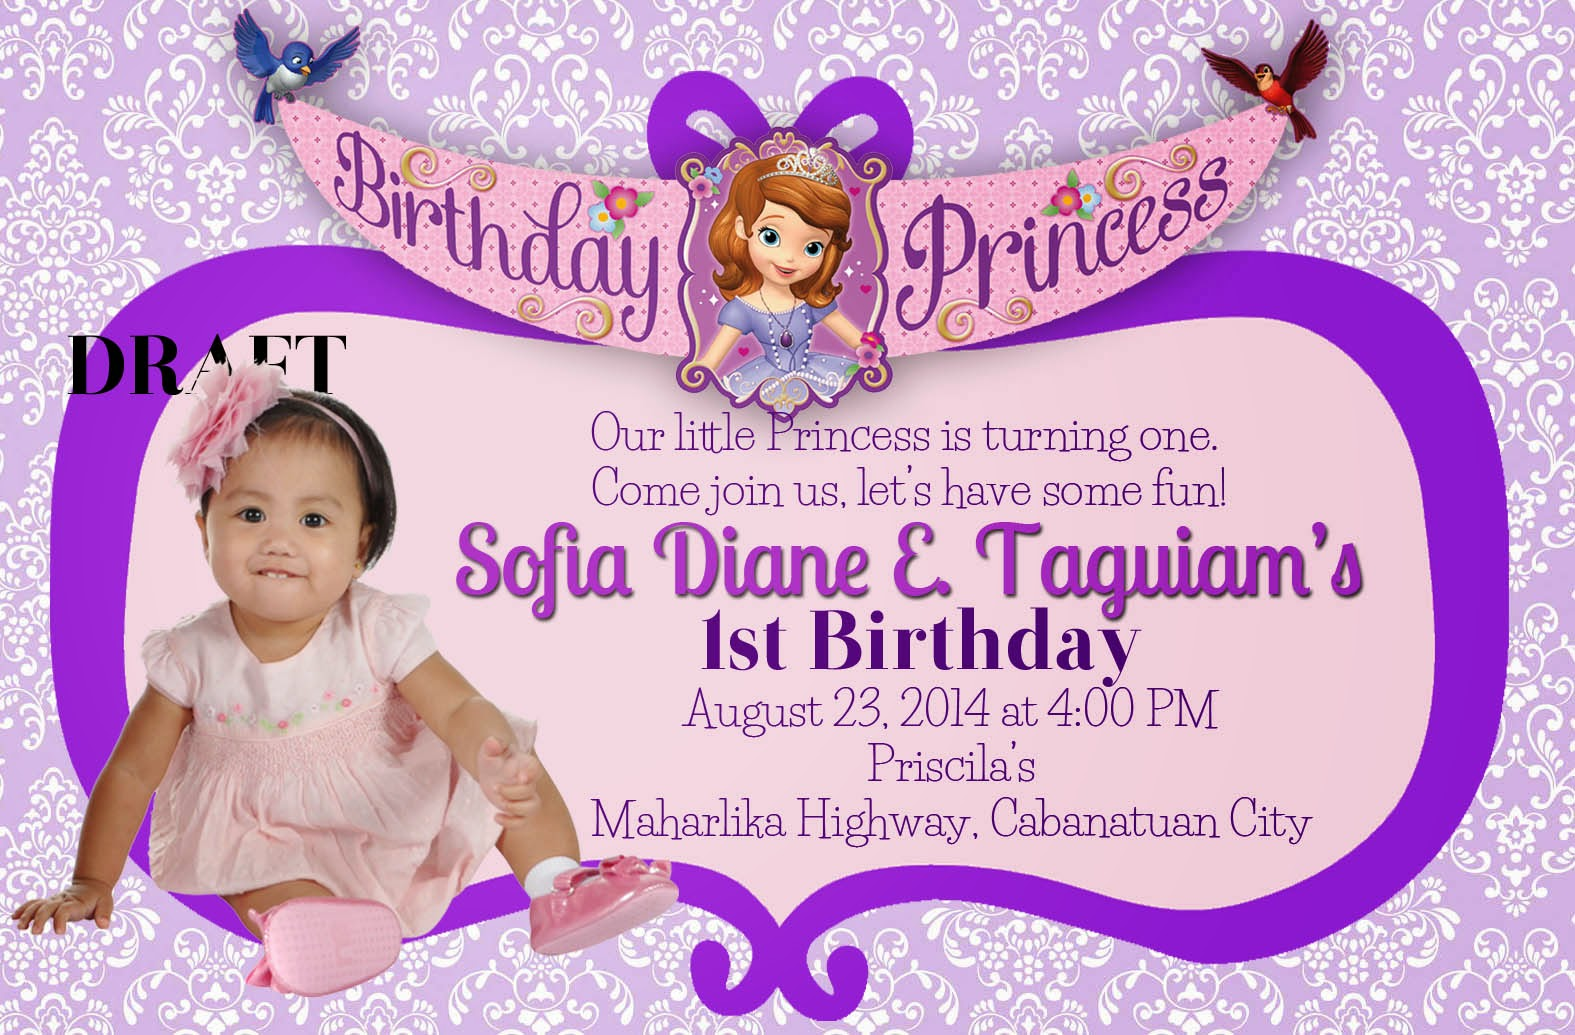 Invitation Wordings Sofia The First Invitation Wording